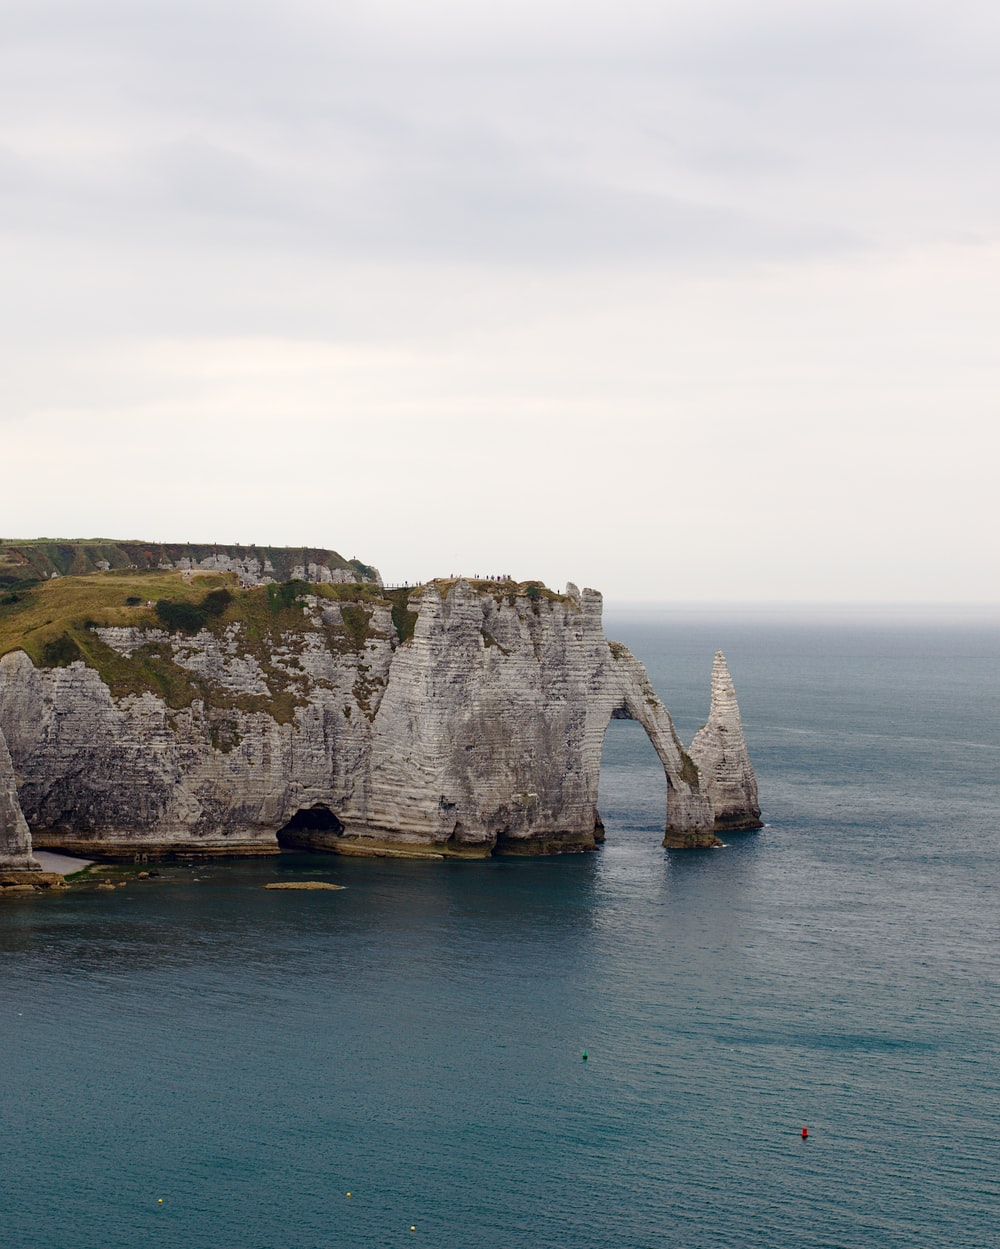 rock formation and body of water